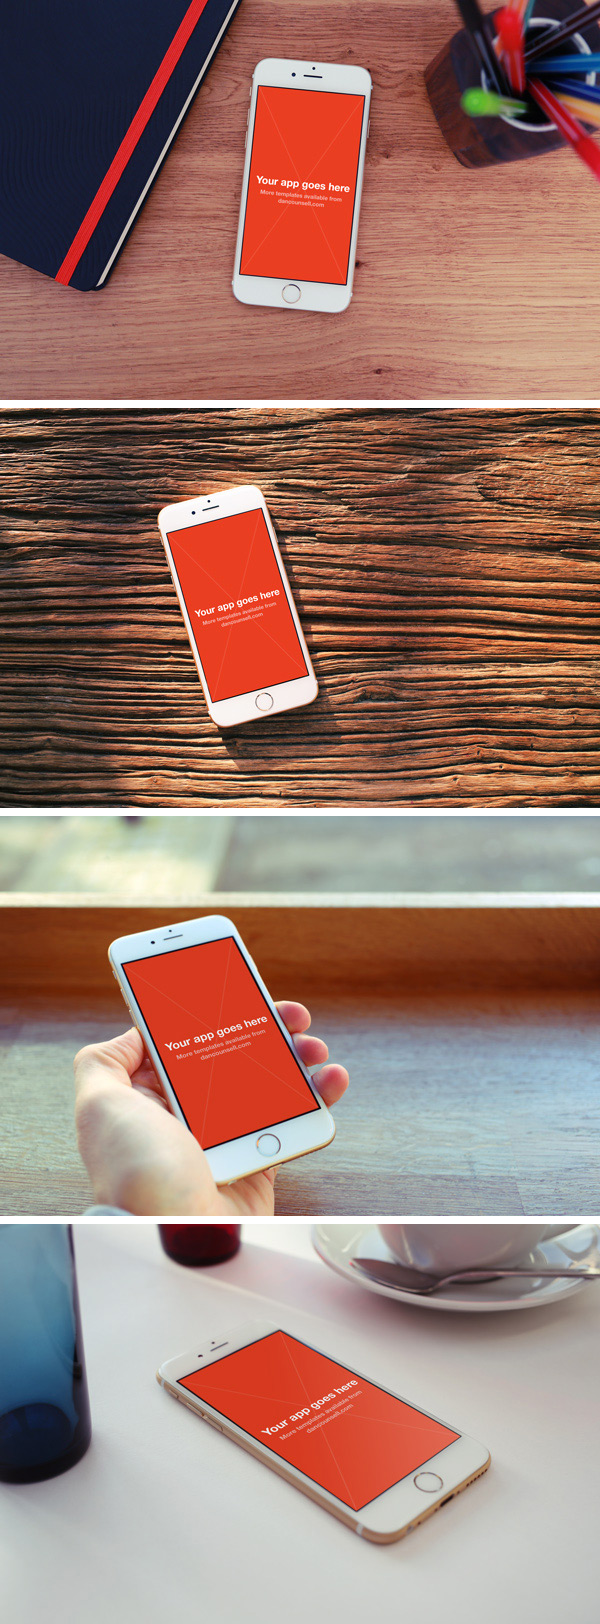 Free 4 iPhone 6 Photo MockUps